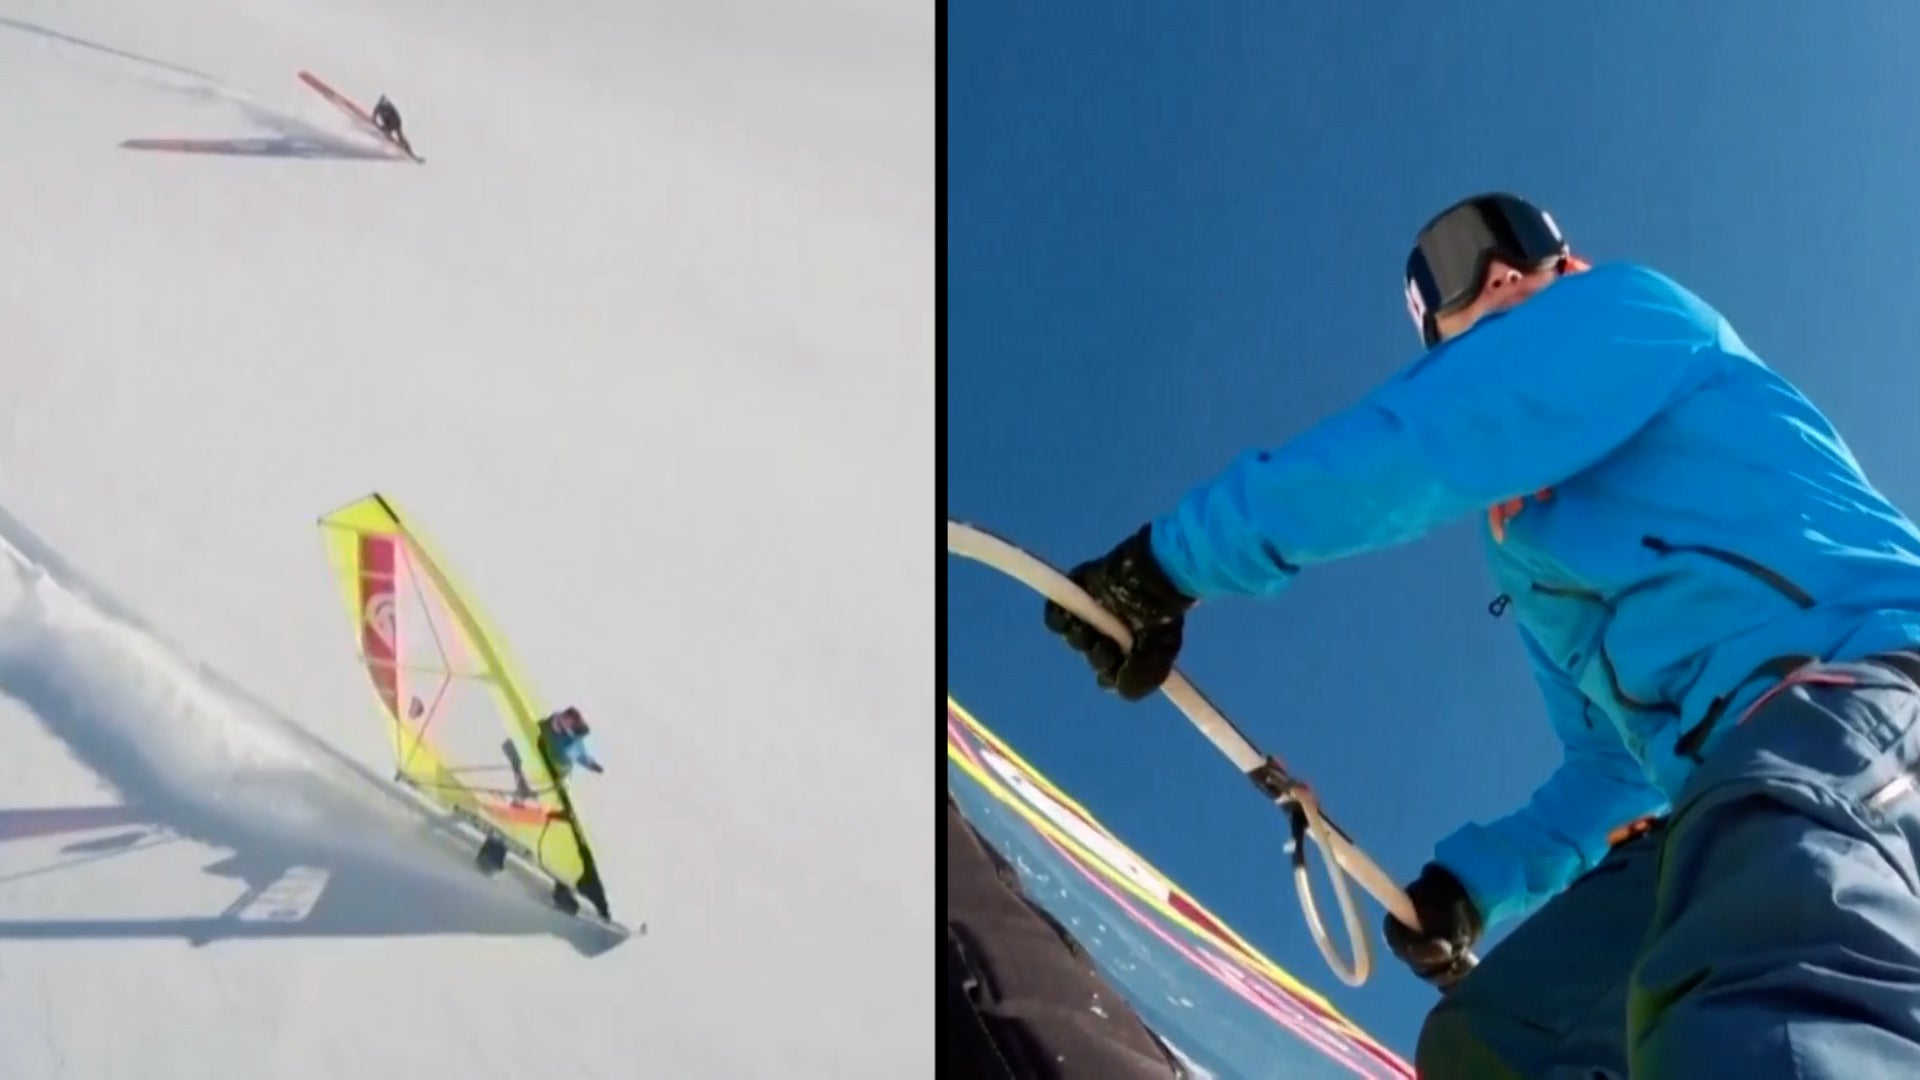 Here's the New Extreme Sport Not for the Faint of Heart